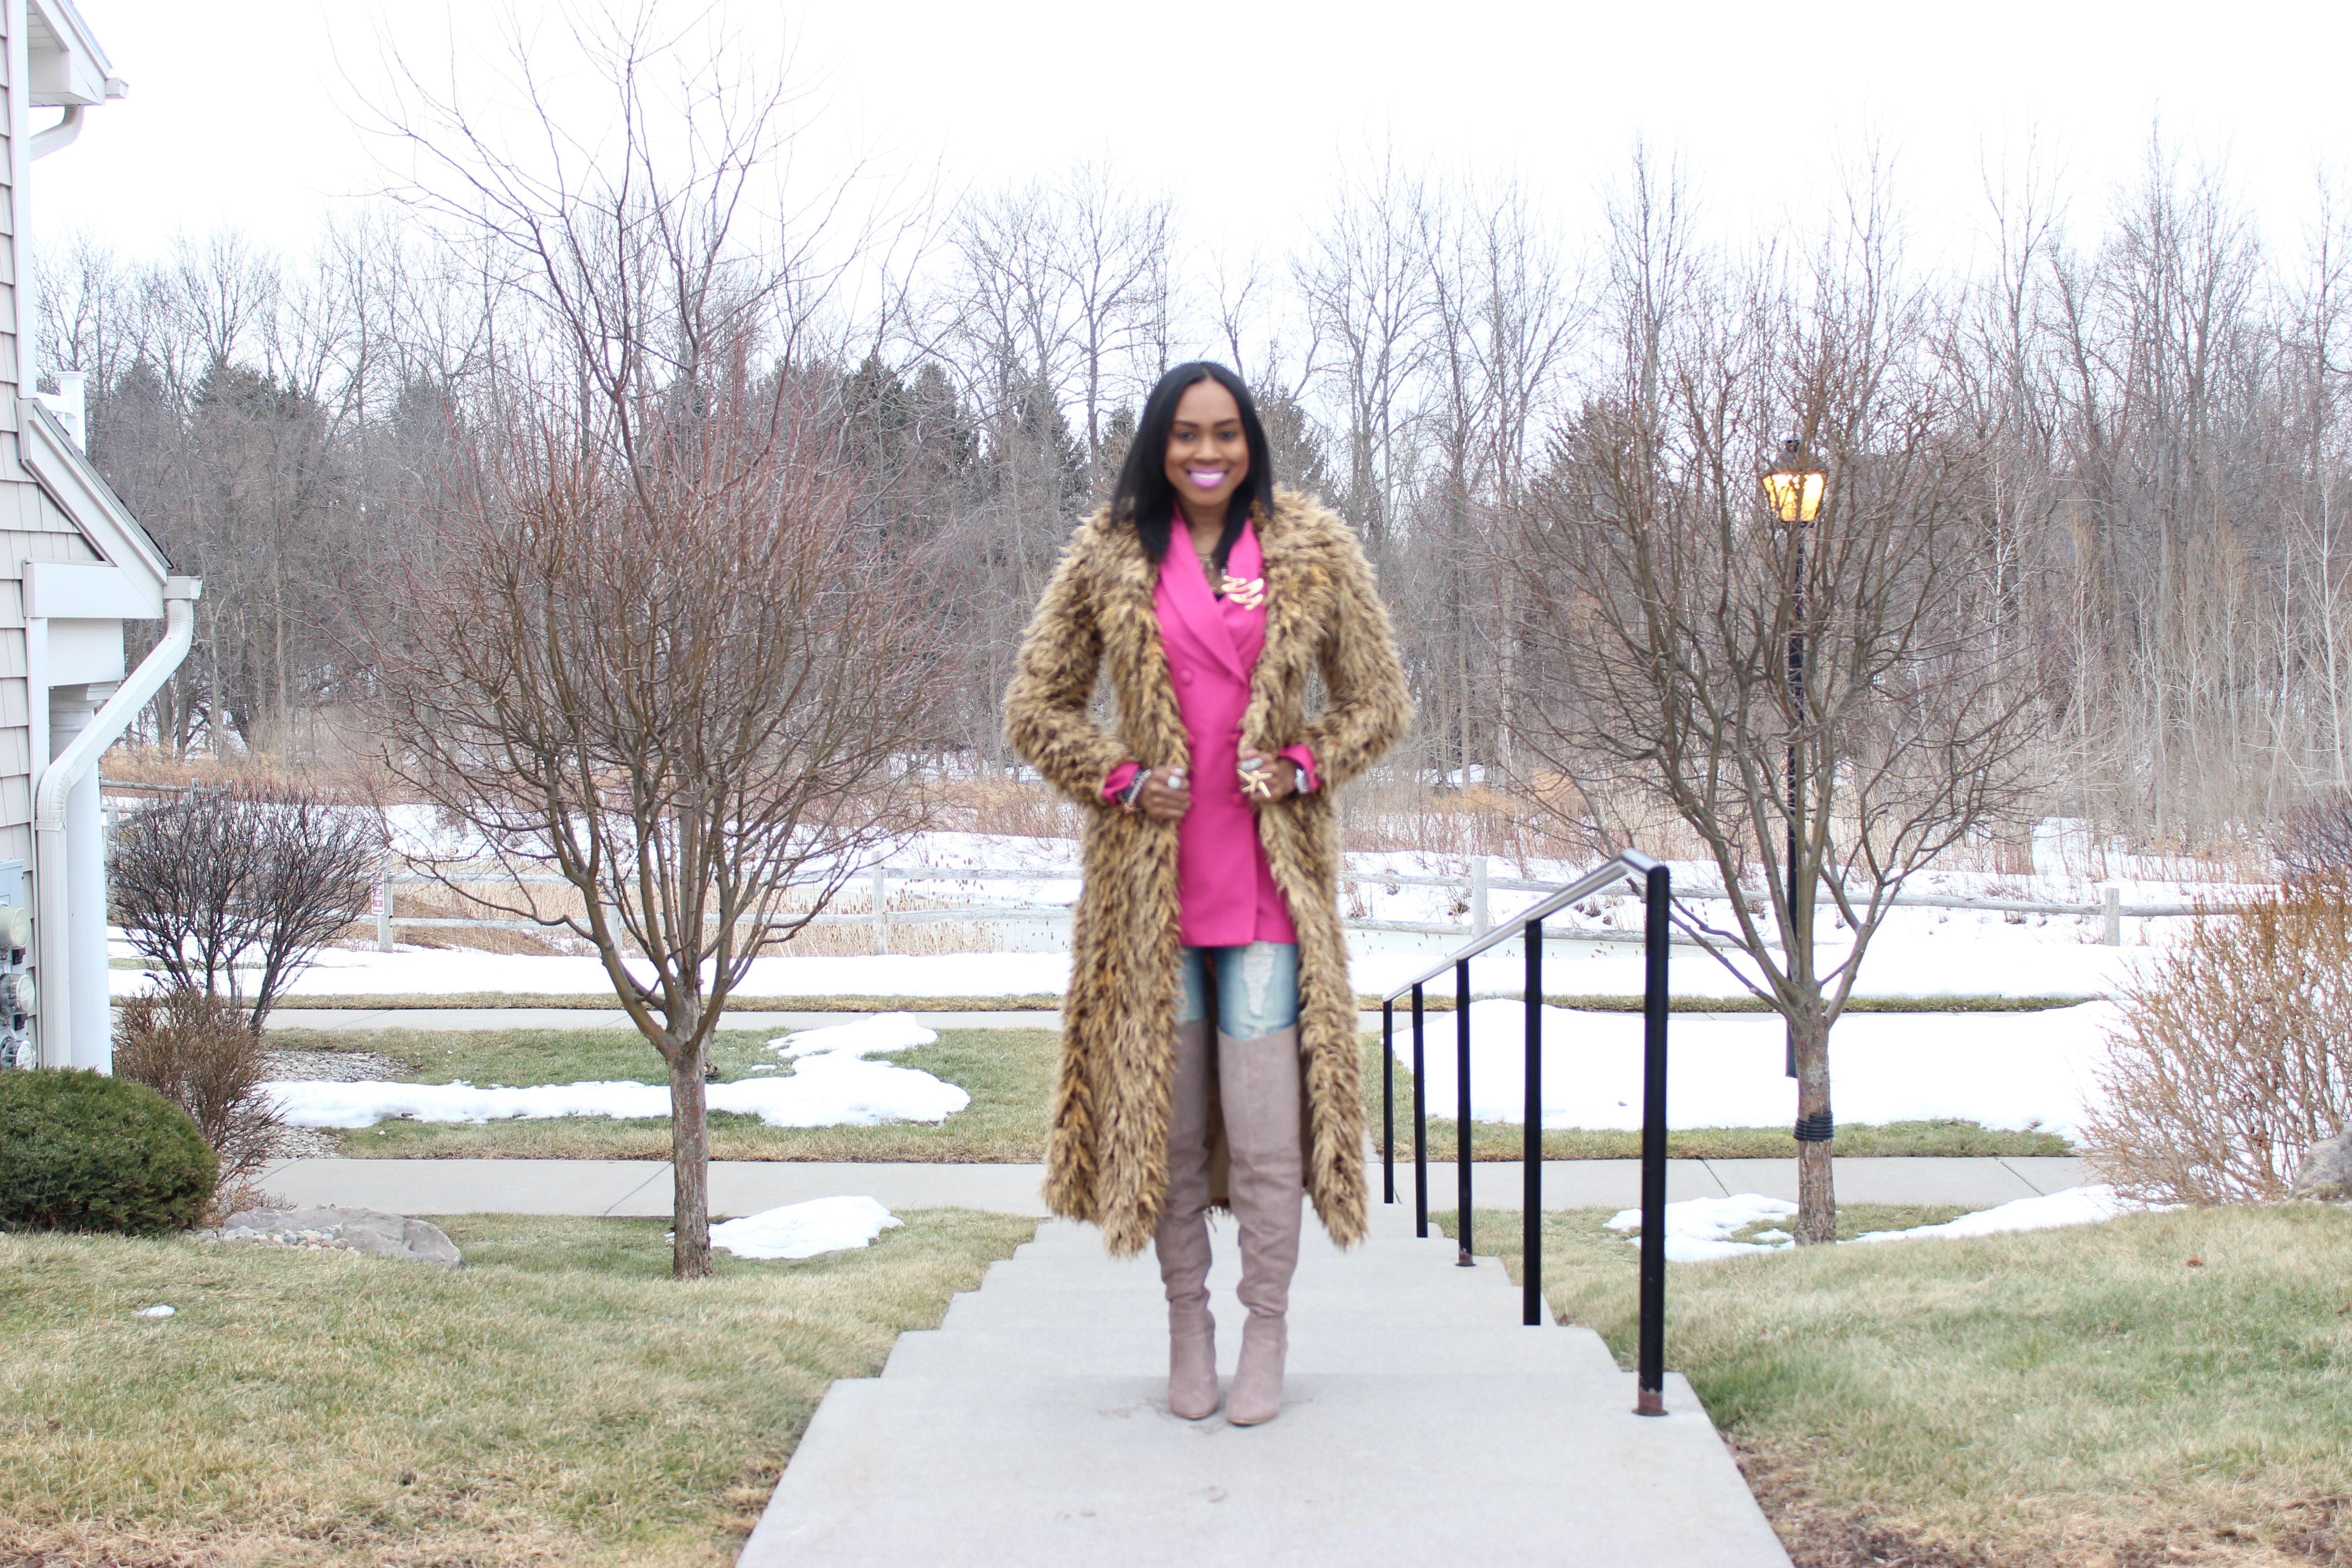 Style-Files-Hot-Pink-Blazer-Distessed-Jeans-Just-fav-over-the-knee-boots-bebe-shaggy-chic-coat-Pretty-Price-10